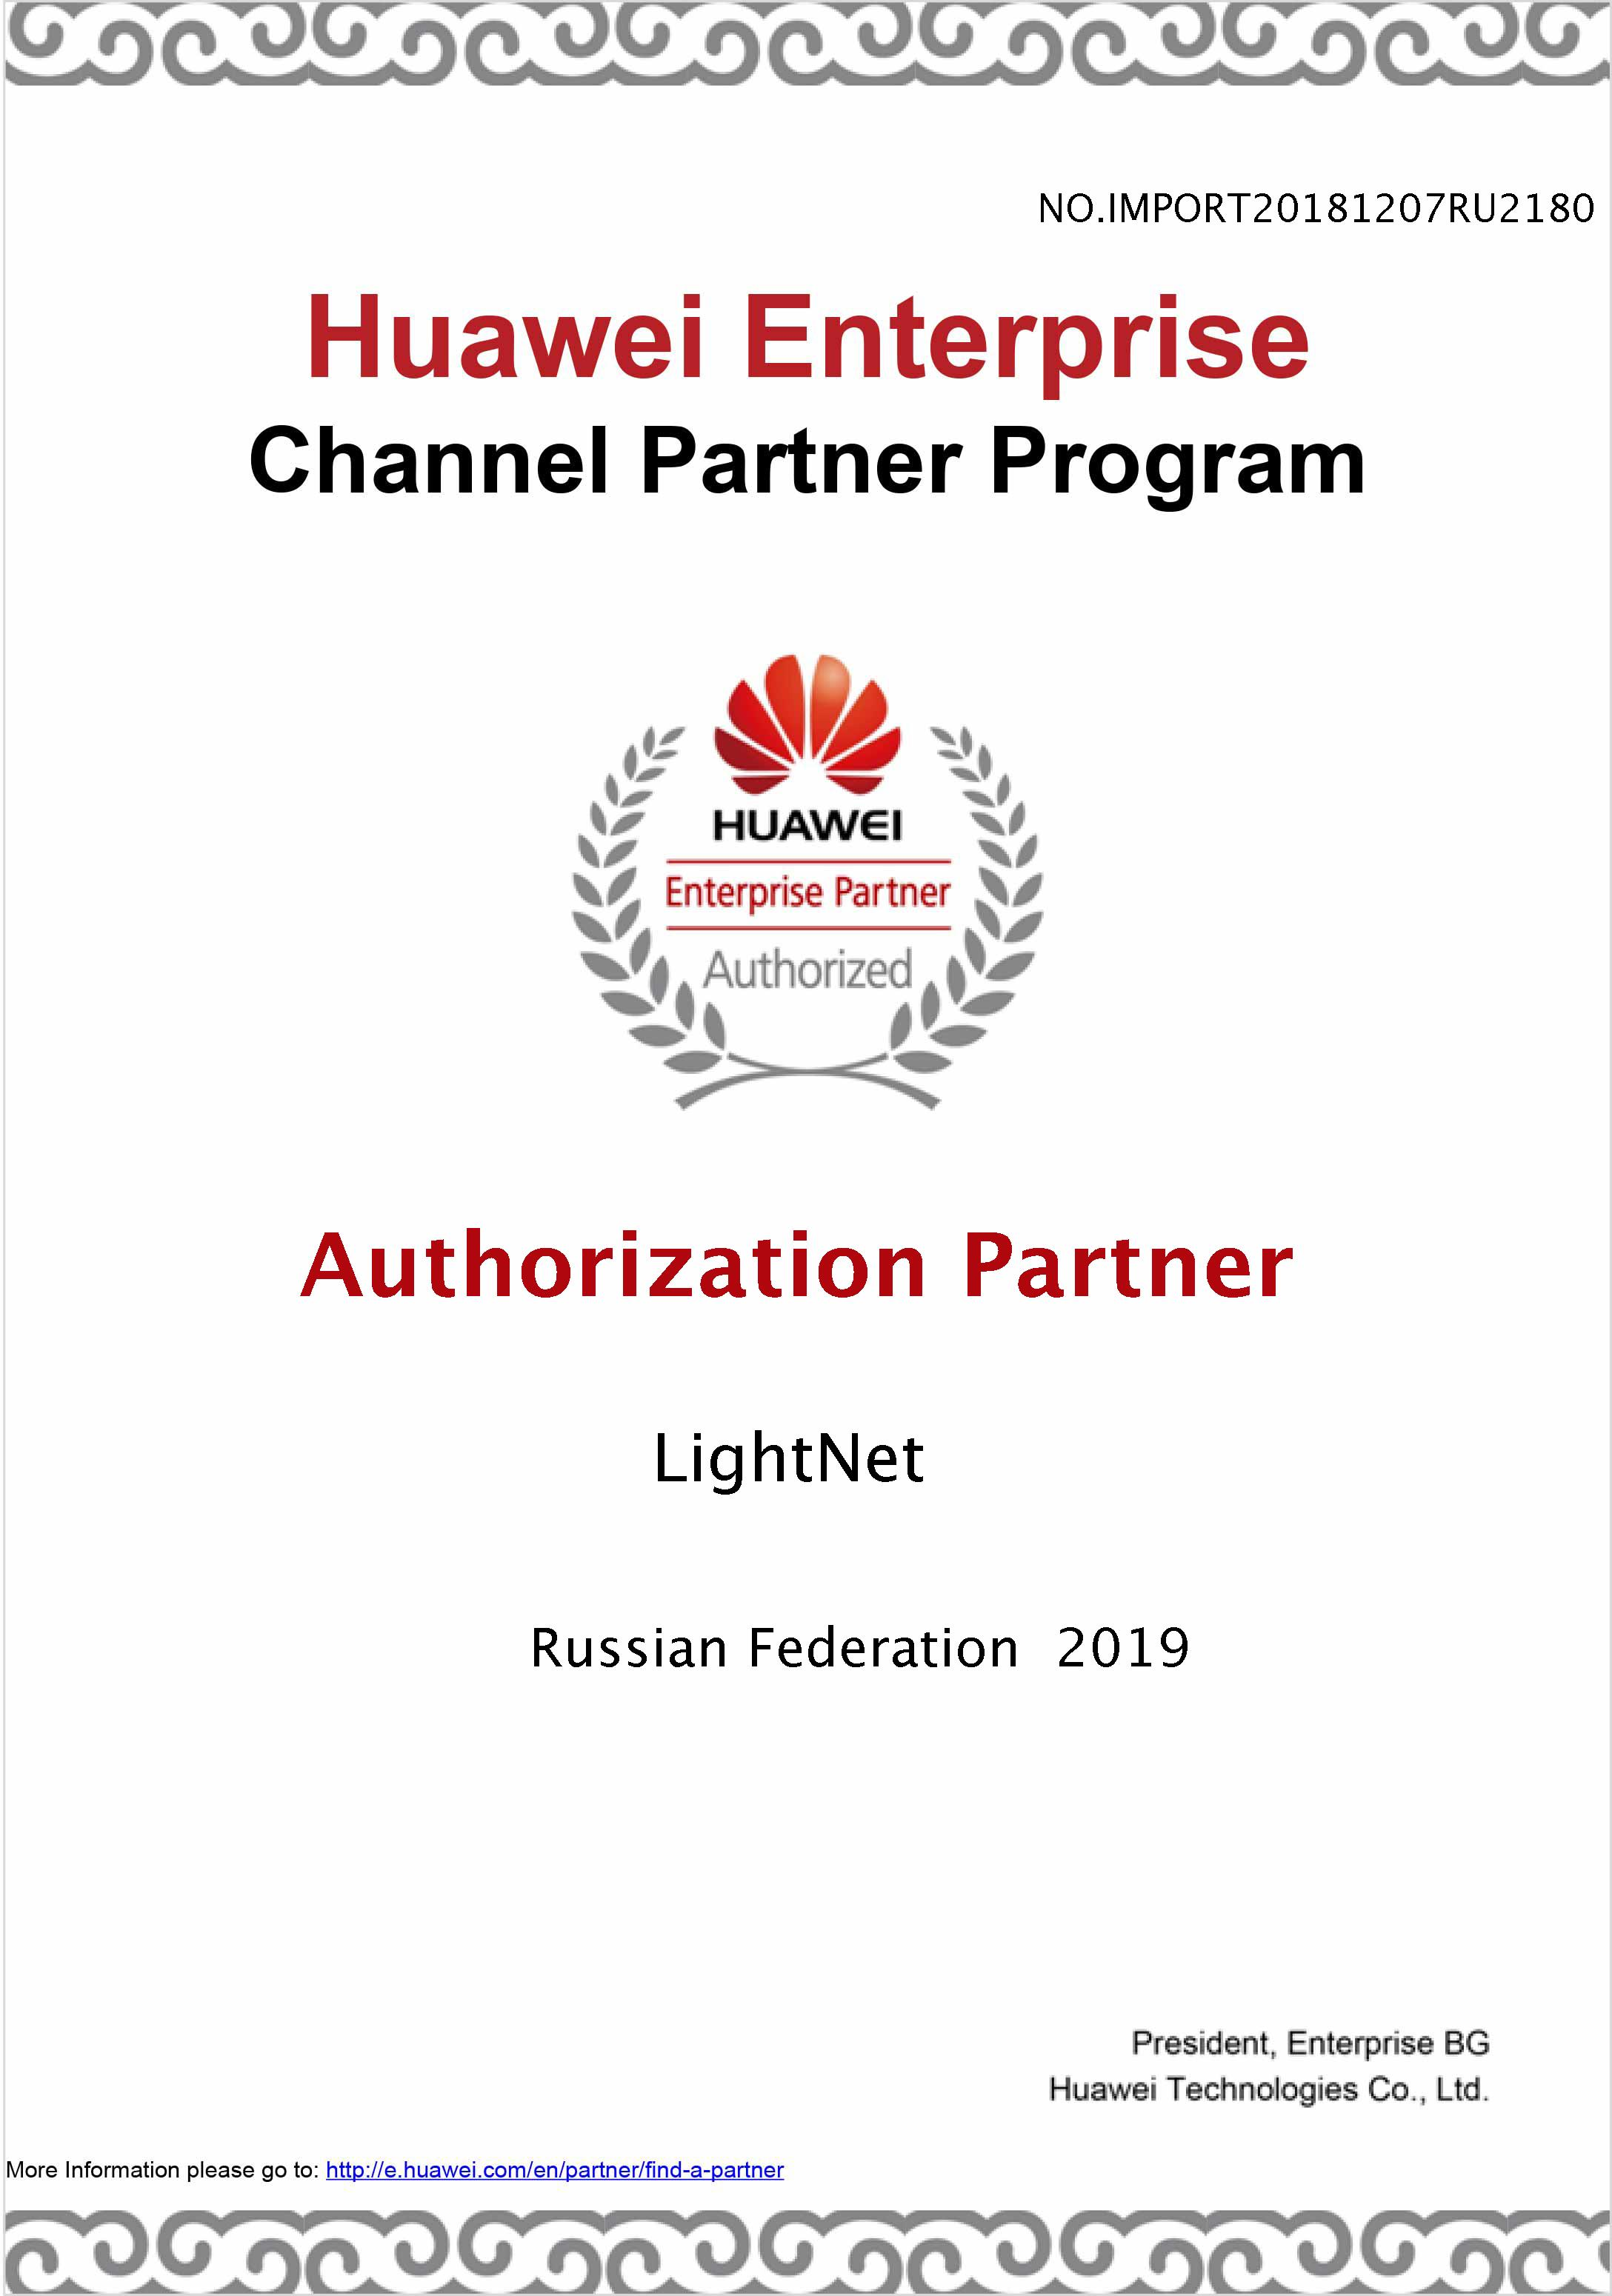 Huawei - Authorized Partner